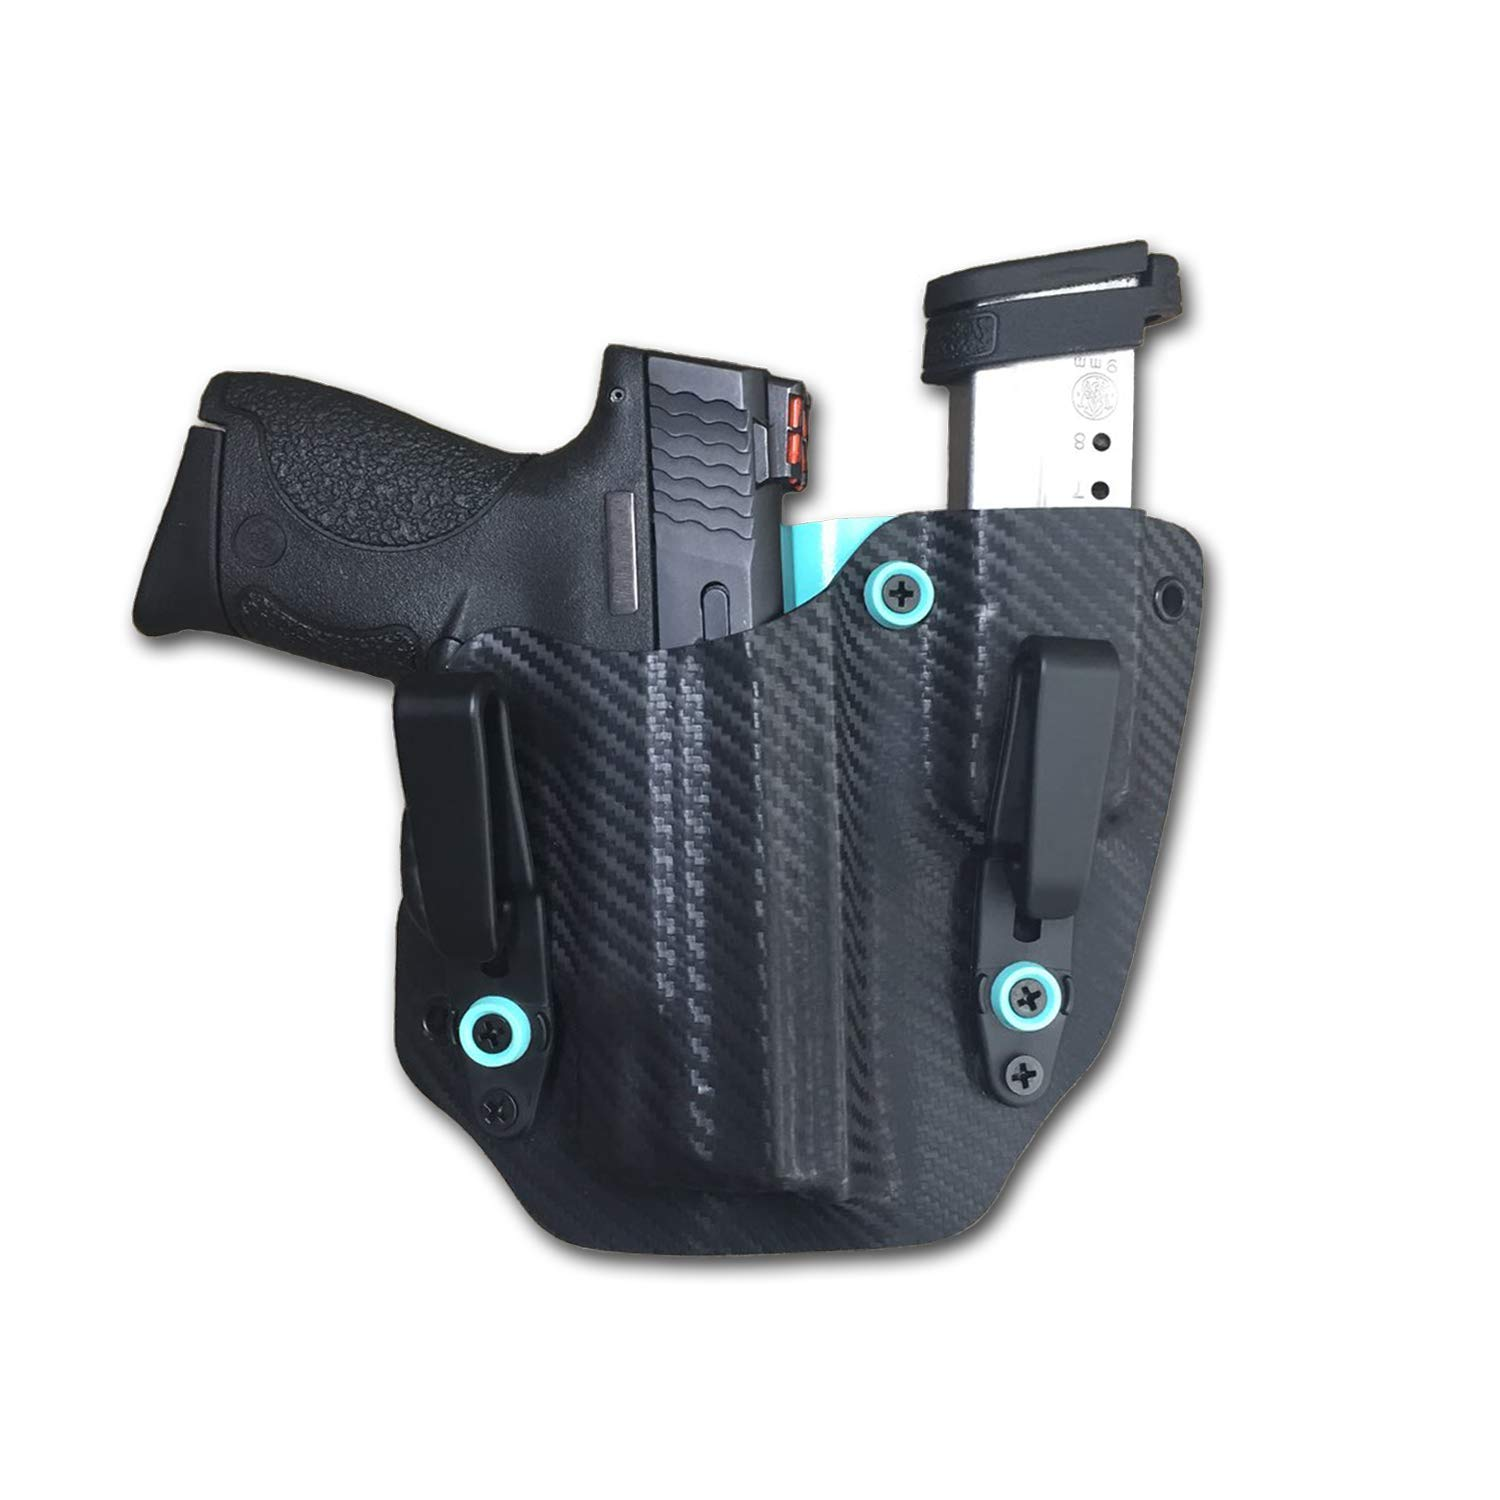 Elite Force Holsters Custom Holster XDS 3.3 Inch Springfield Los outlet Angeles Mall for